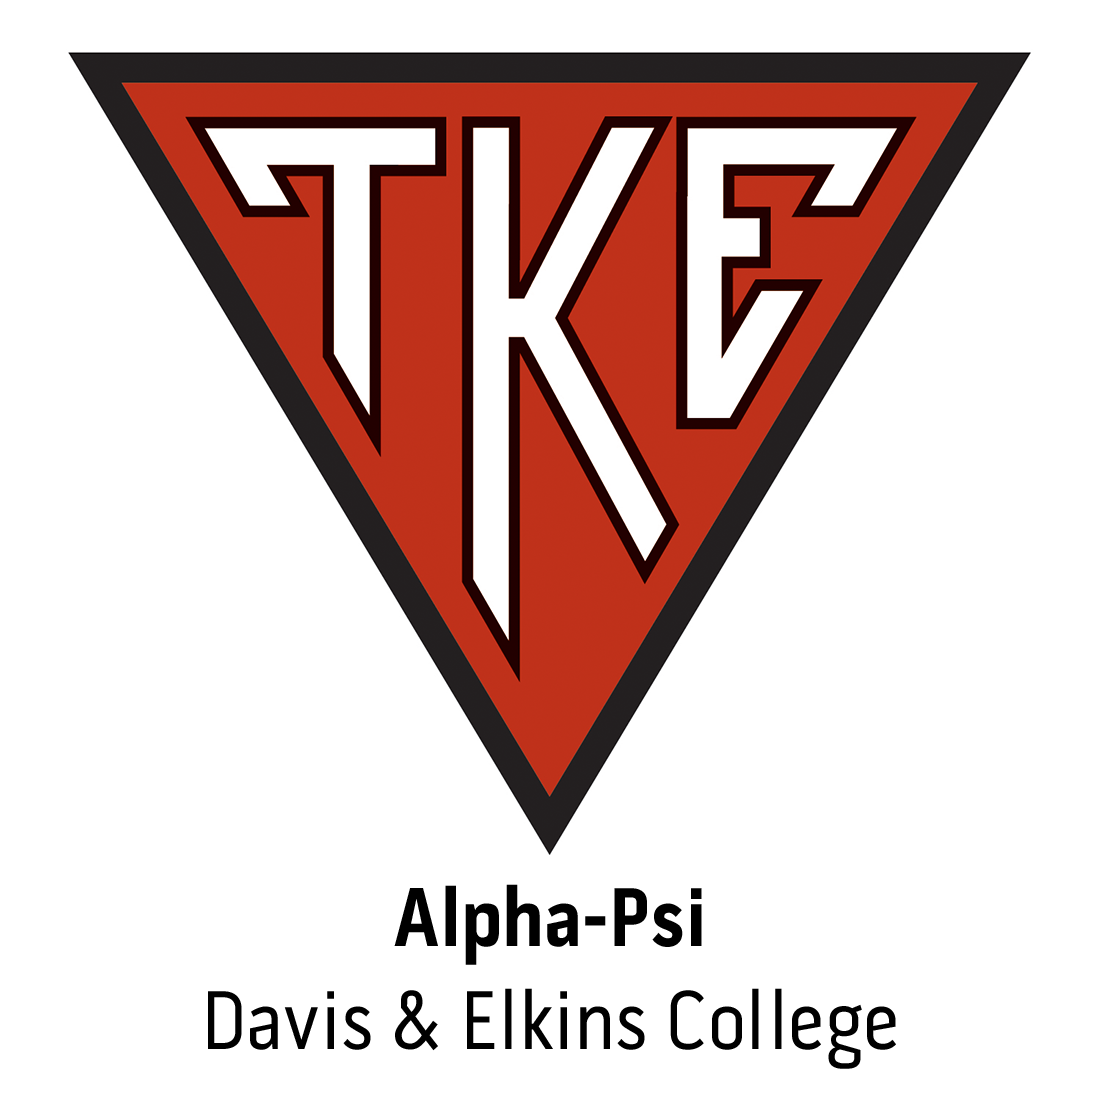 Alpha-Psi Chapter at Davis & Elkins College